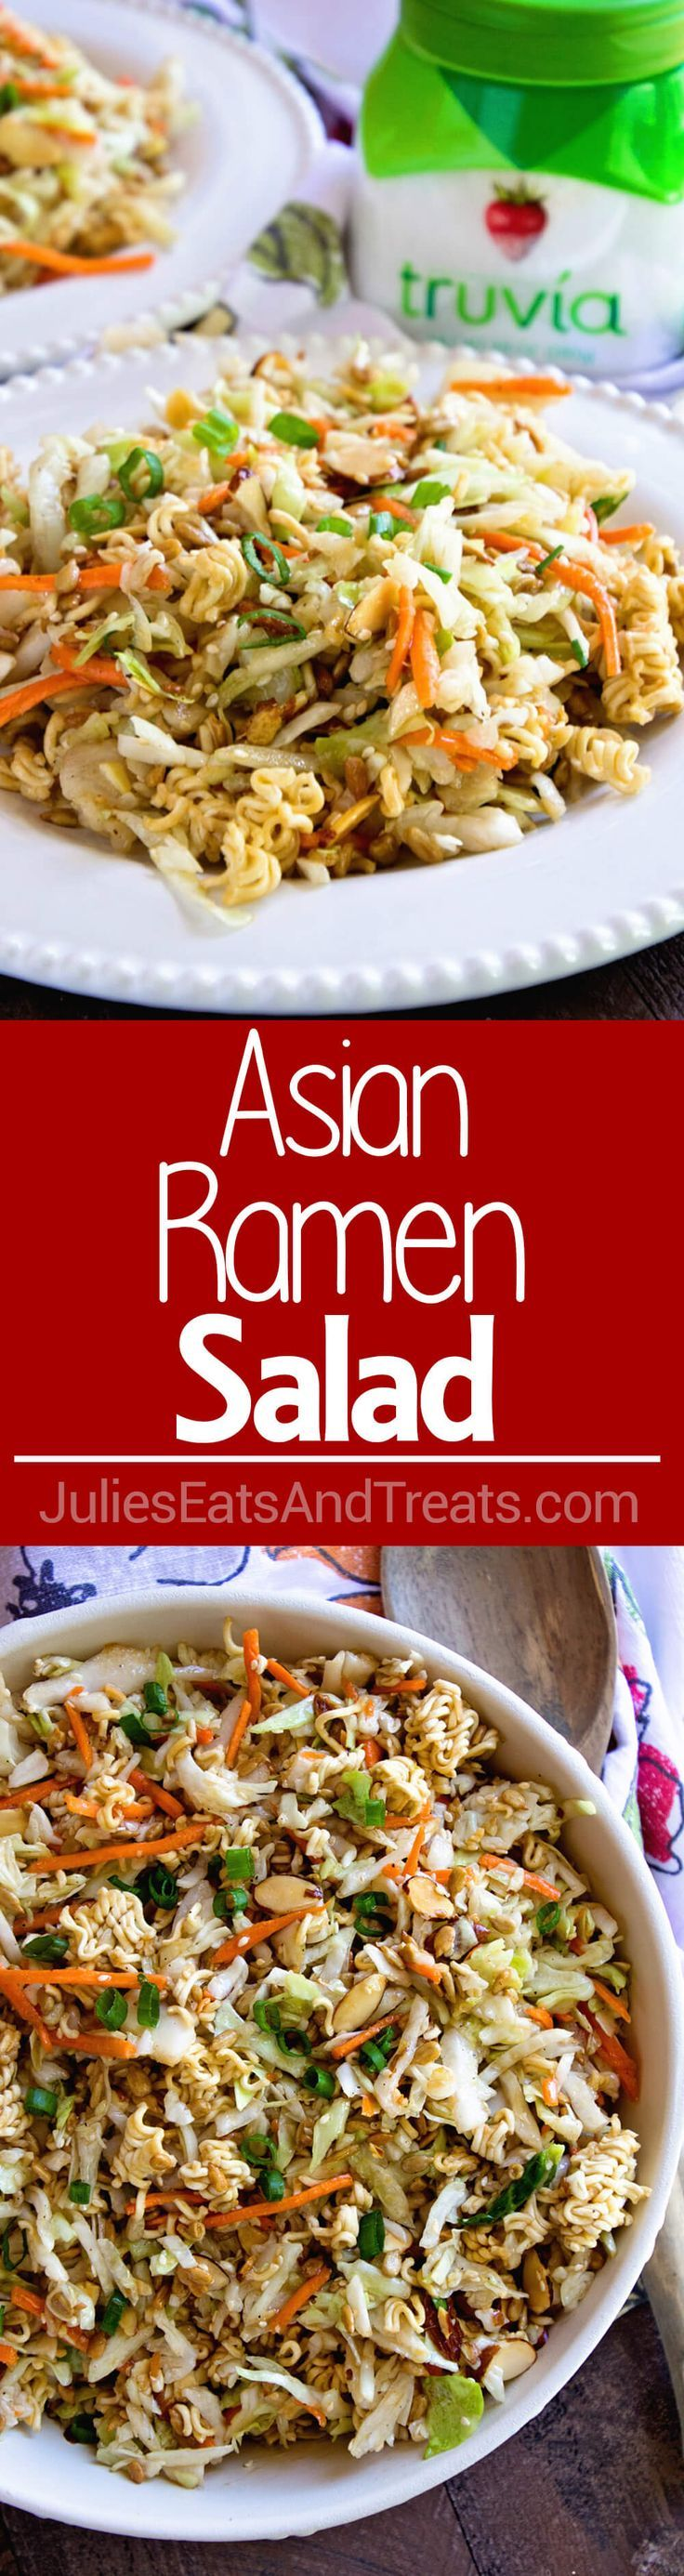 Asian Ramen Salad ~ Quick, Easy and Full of Flavor! It's the Perfect Potluck Salad and Only takes Minutes to Throw Together! Sweet, Savory and Delicious with the Perfect Amount of Crunch! @TruviaBrand